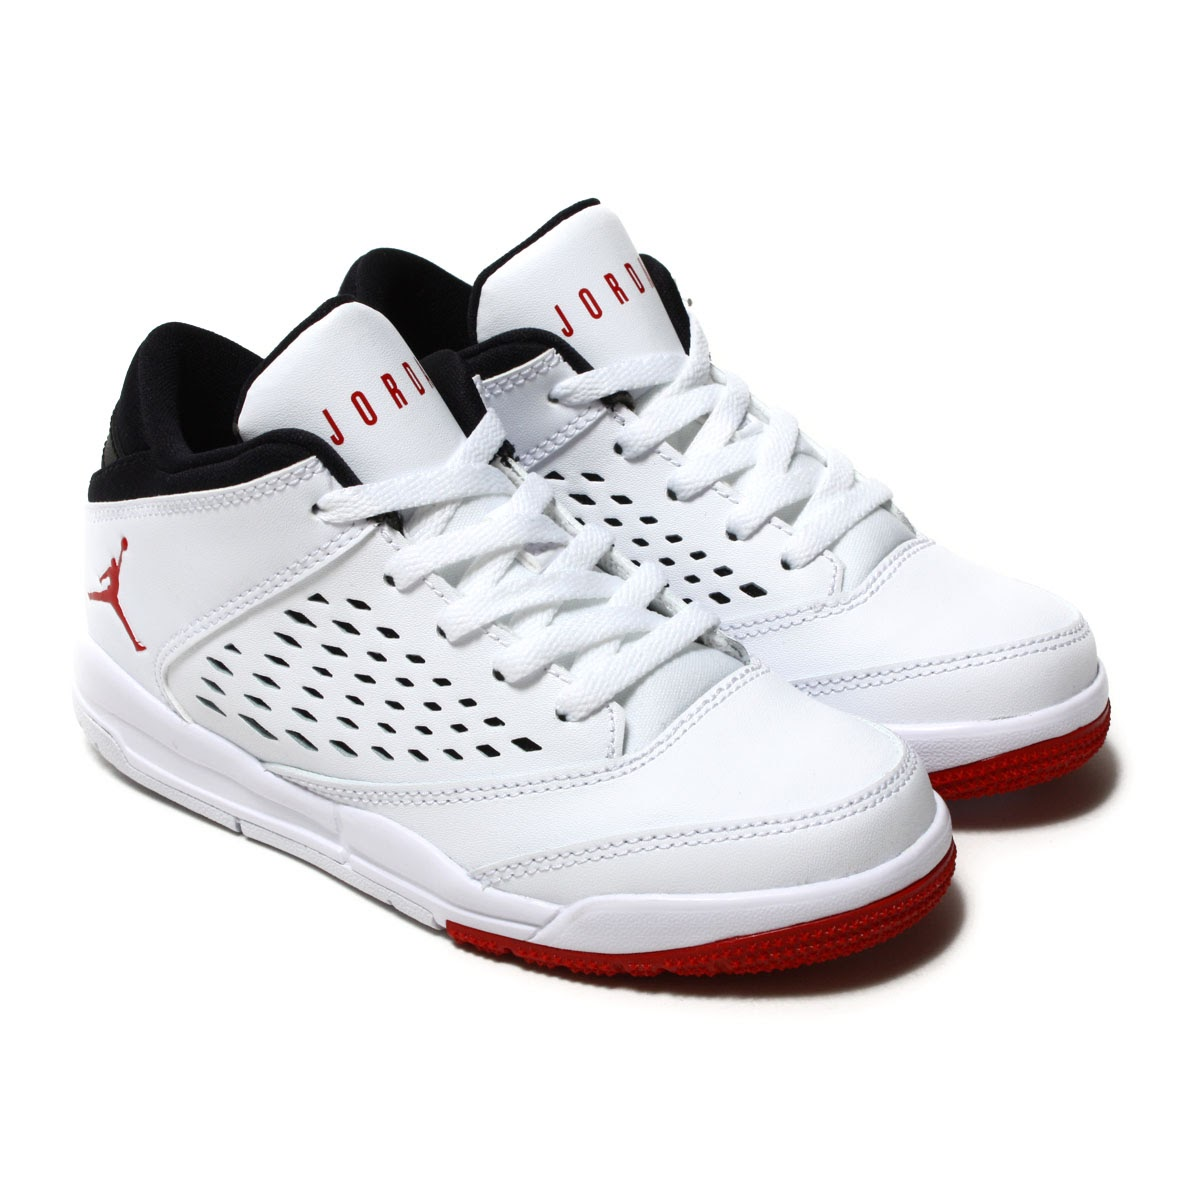 522195c1a5e1 NIKE JORDAN FLIGHT ORIGIN 4 BP (Nike Jordan flight origin 4 BP) WHITE GYM  RED-BLACK 17FA-I